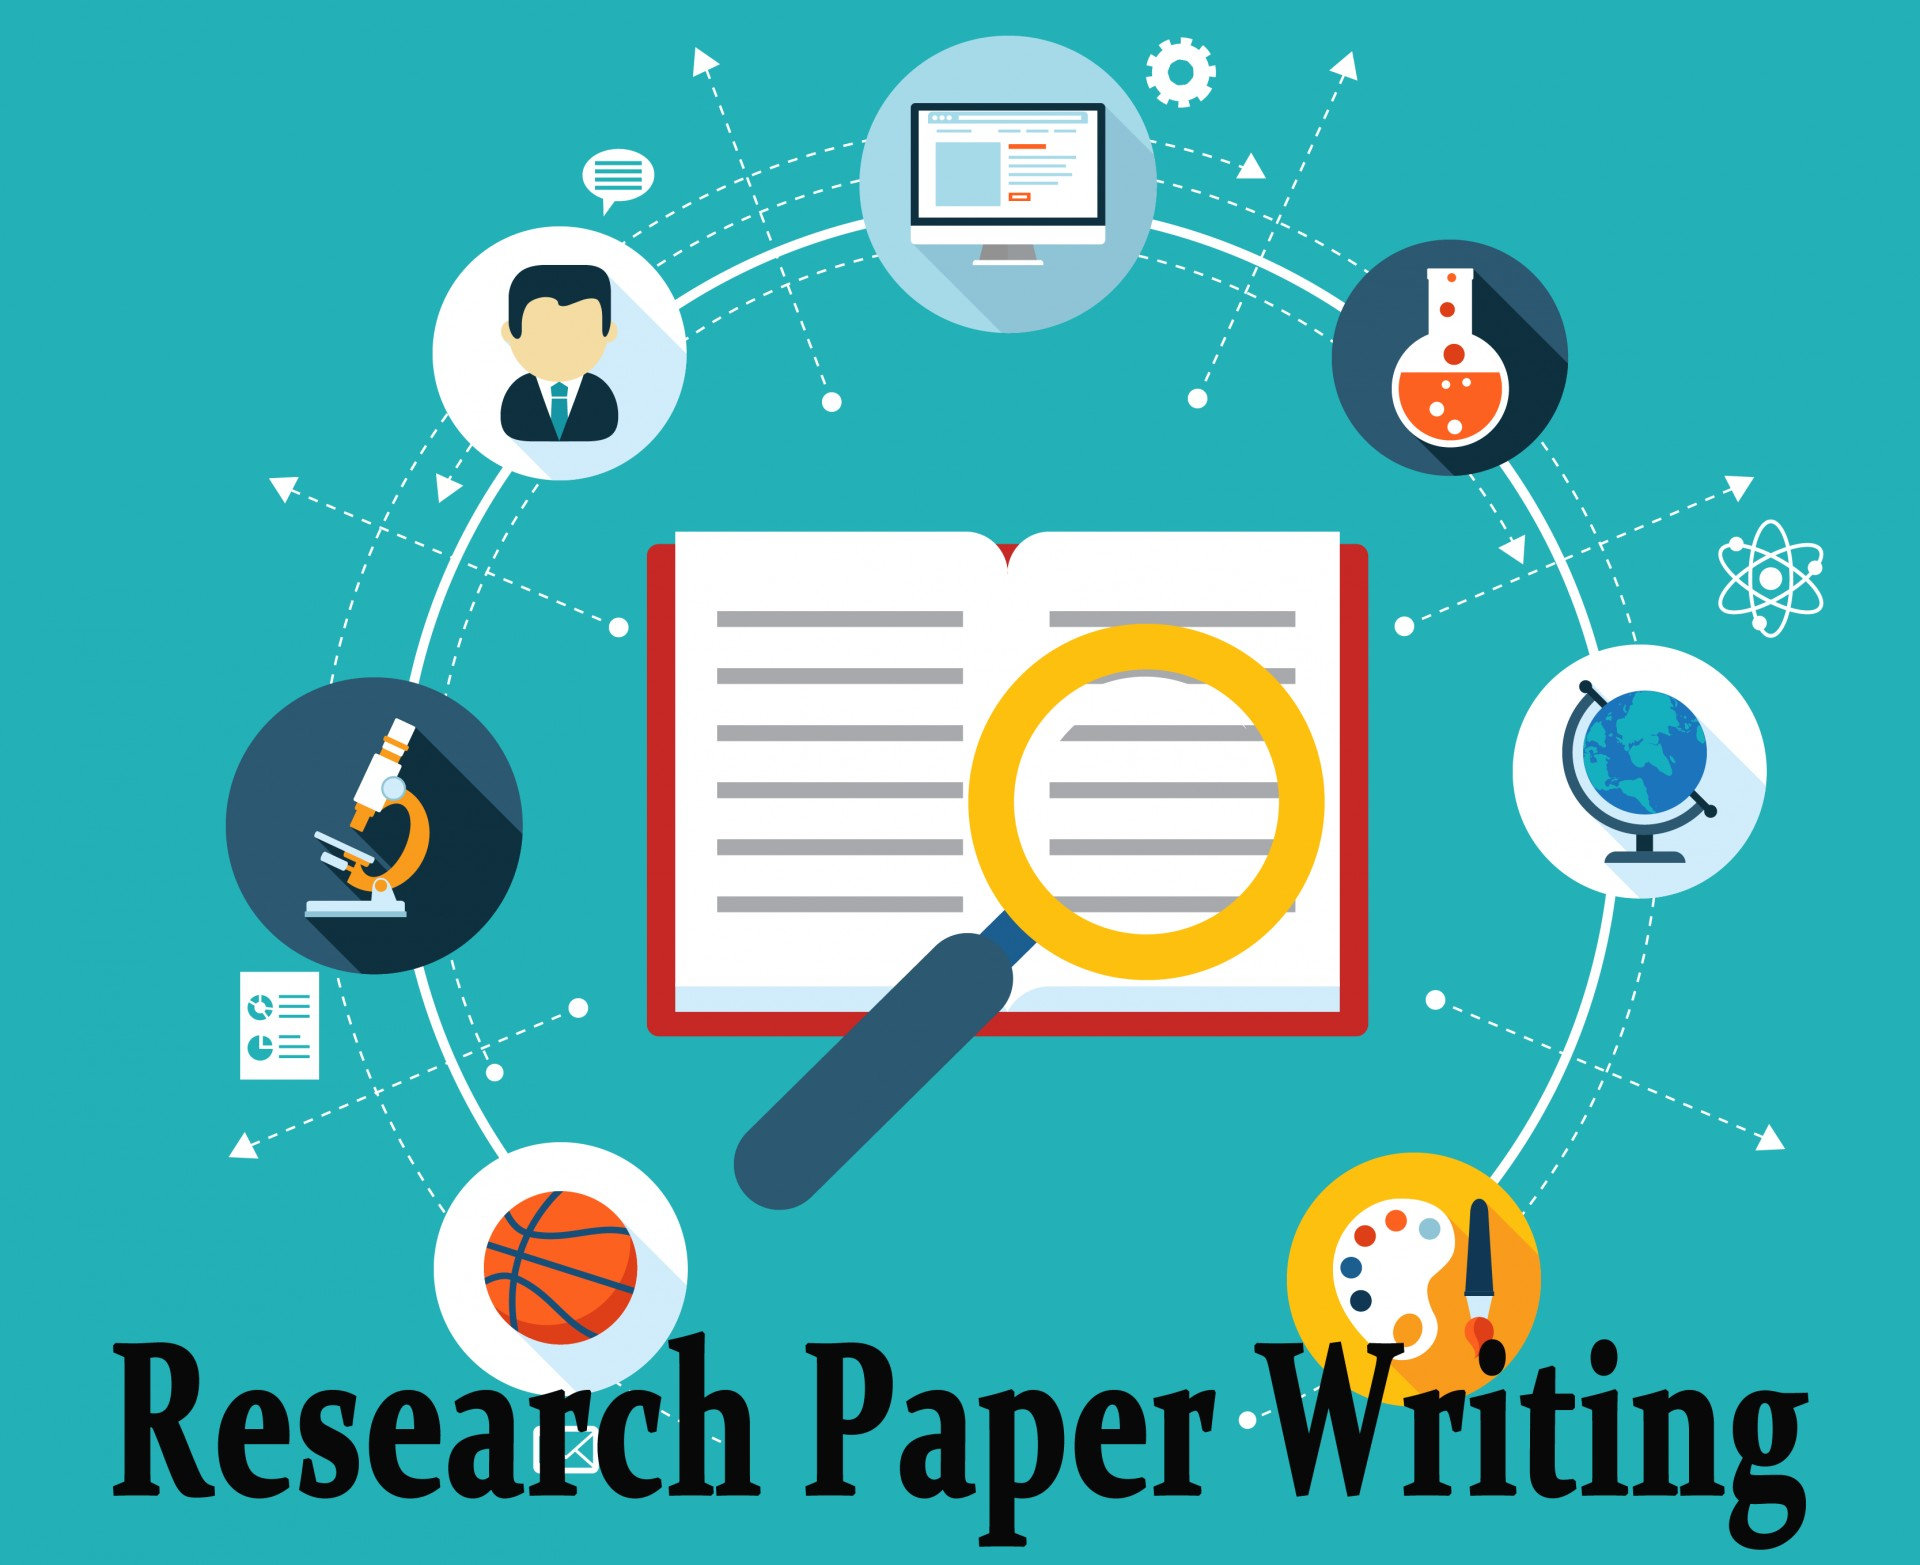 001 Help On Researchs 503 Effective Research Writing Best Papers Paper Free Outline 1920